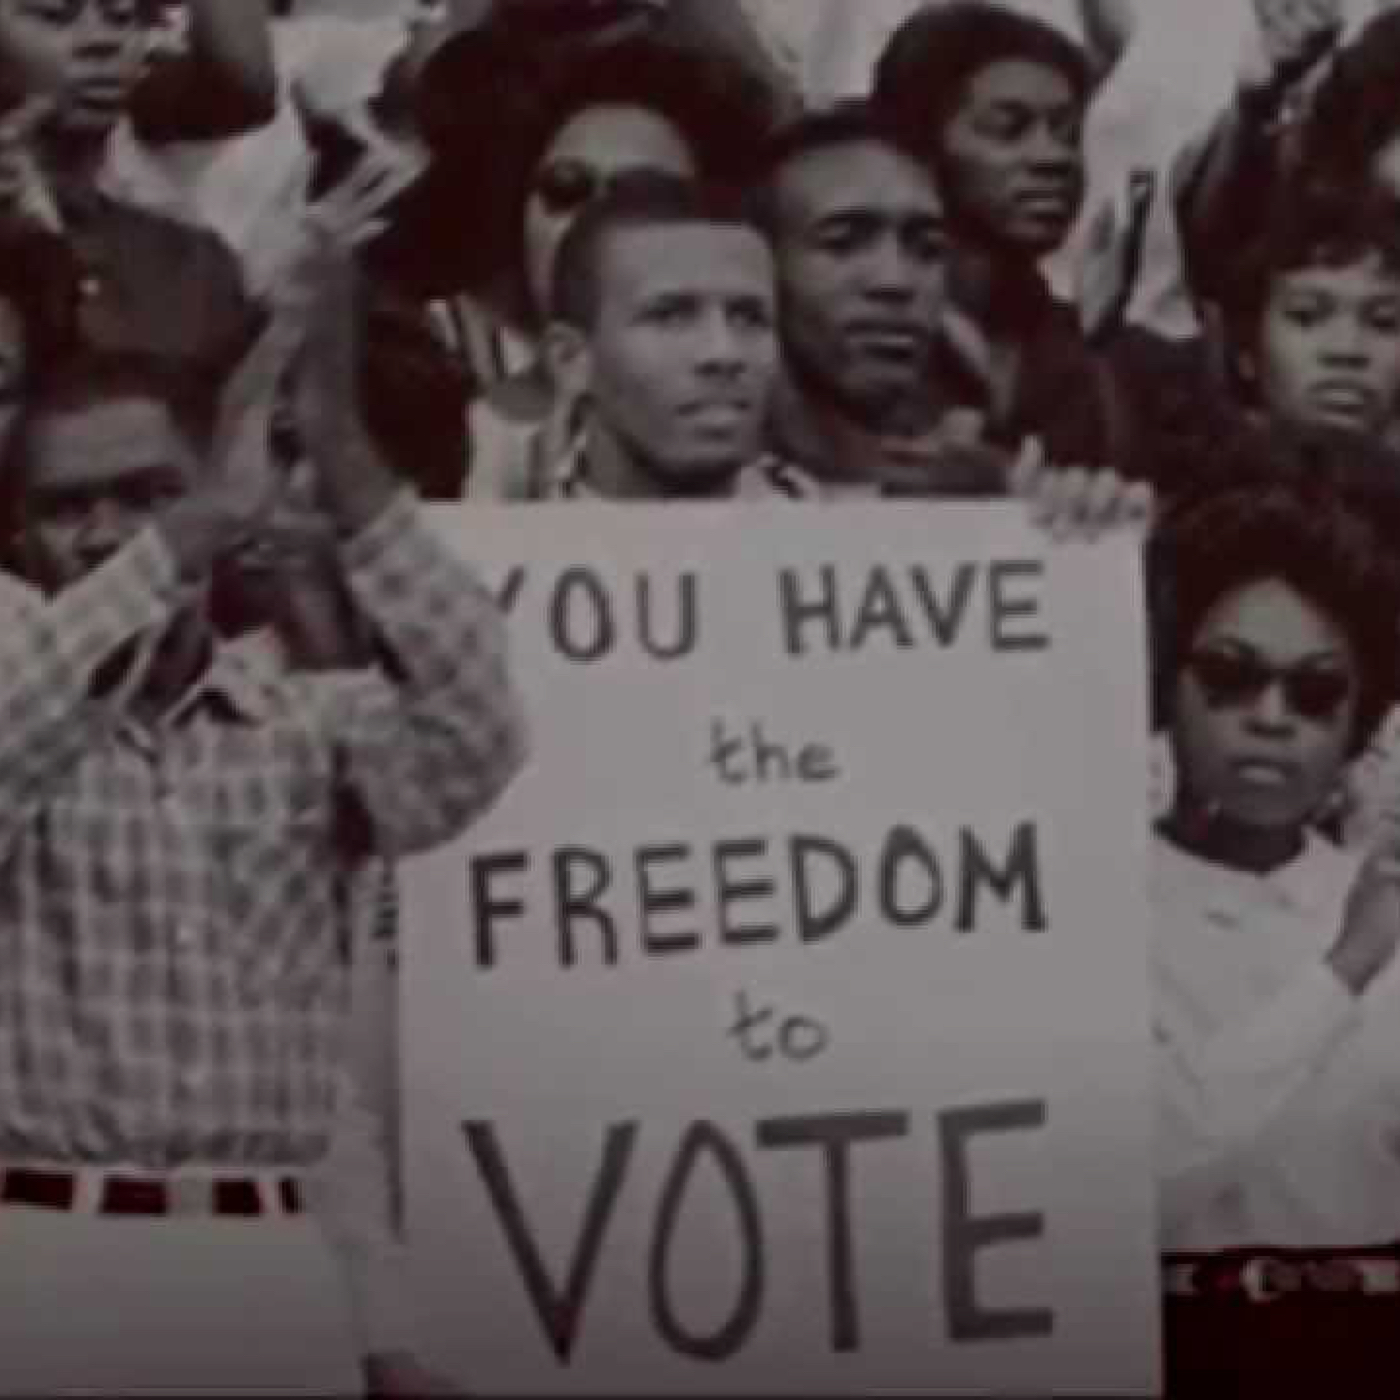 (2015/10/16) Working our way toward anti-democracy (Voter Suppression)